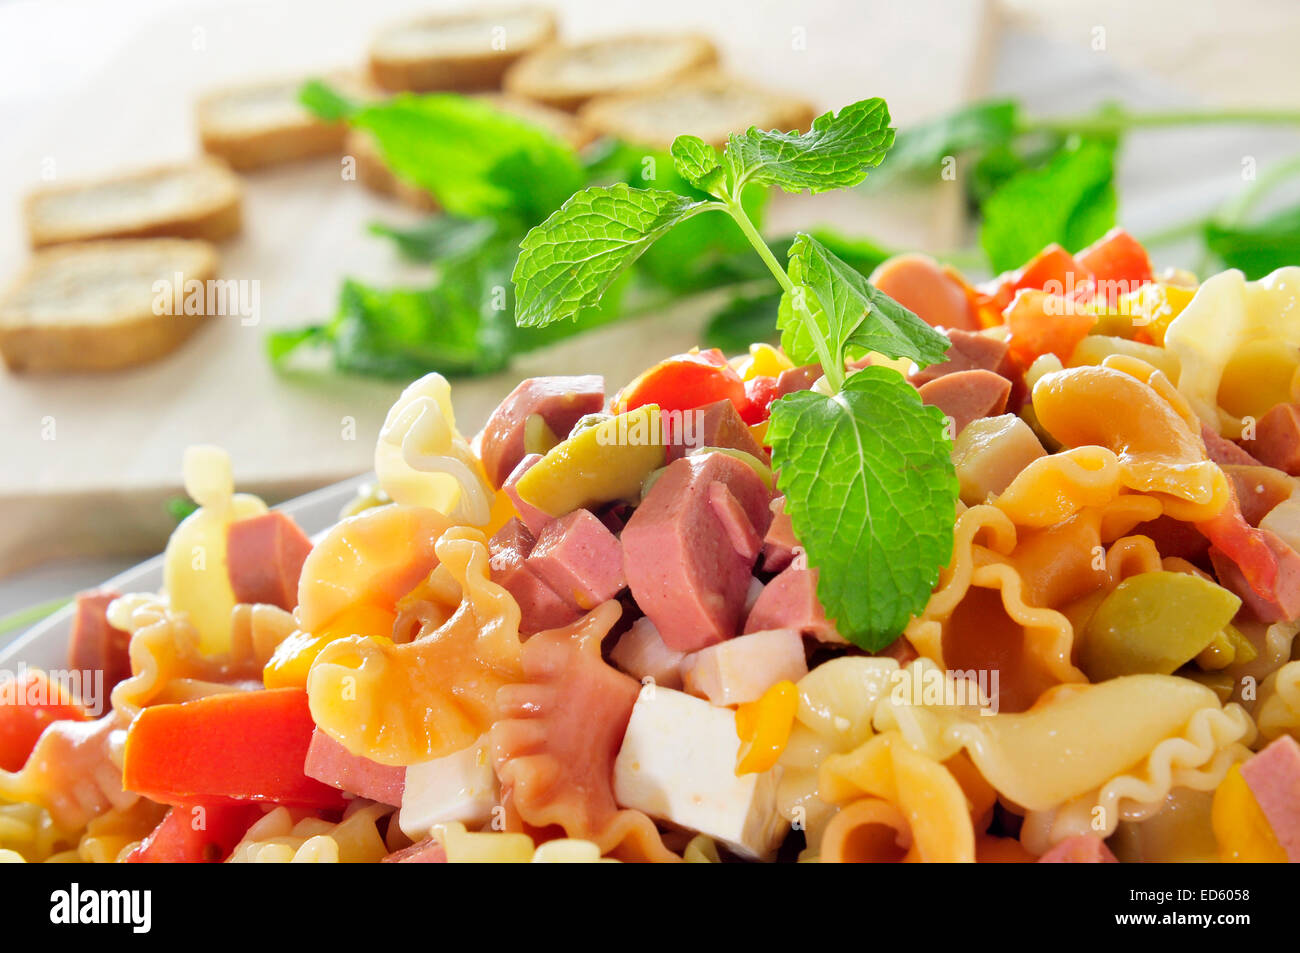 closeup of a refreshing pasta salad, with feta cheese, tomato, olives and frankfurter sausages - Stock Image